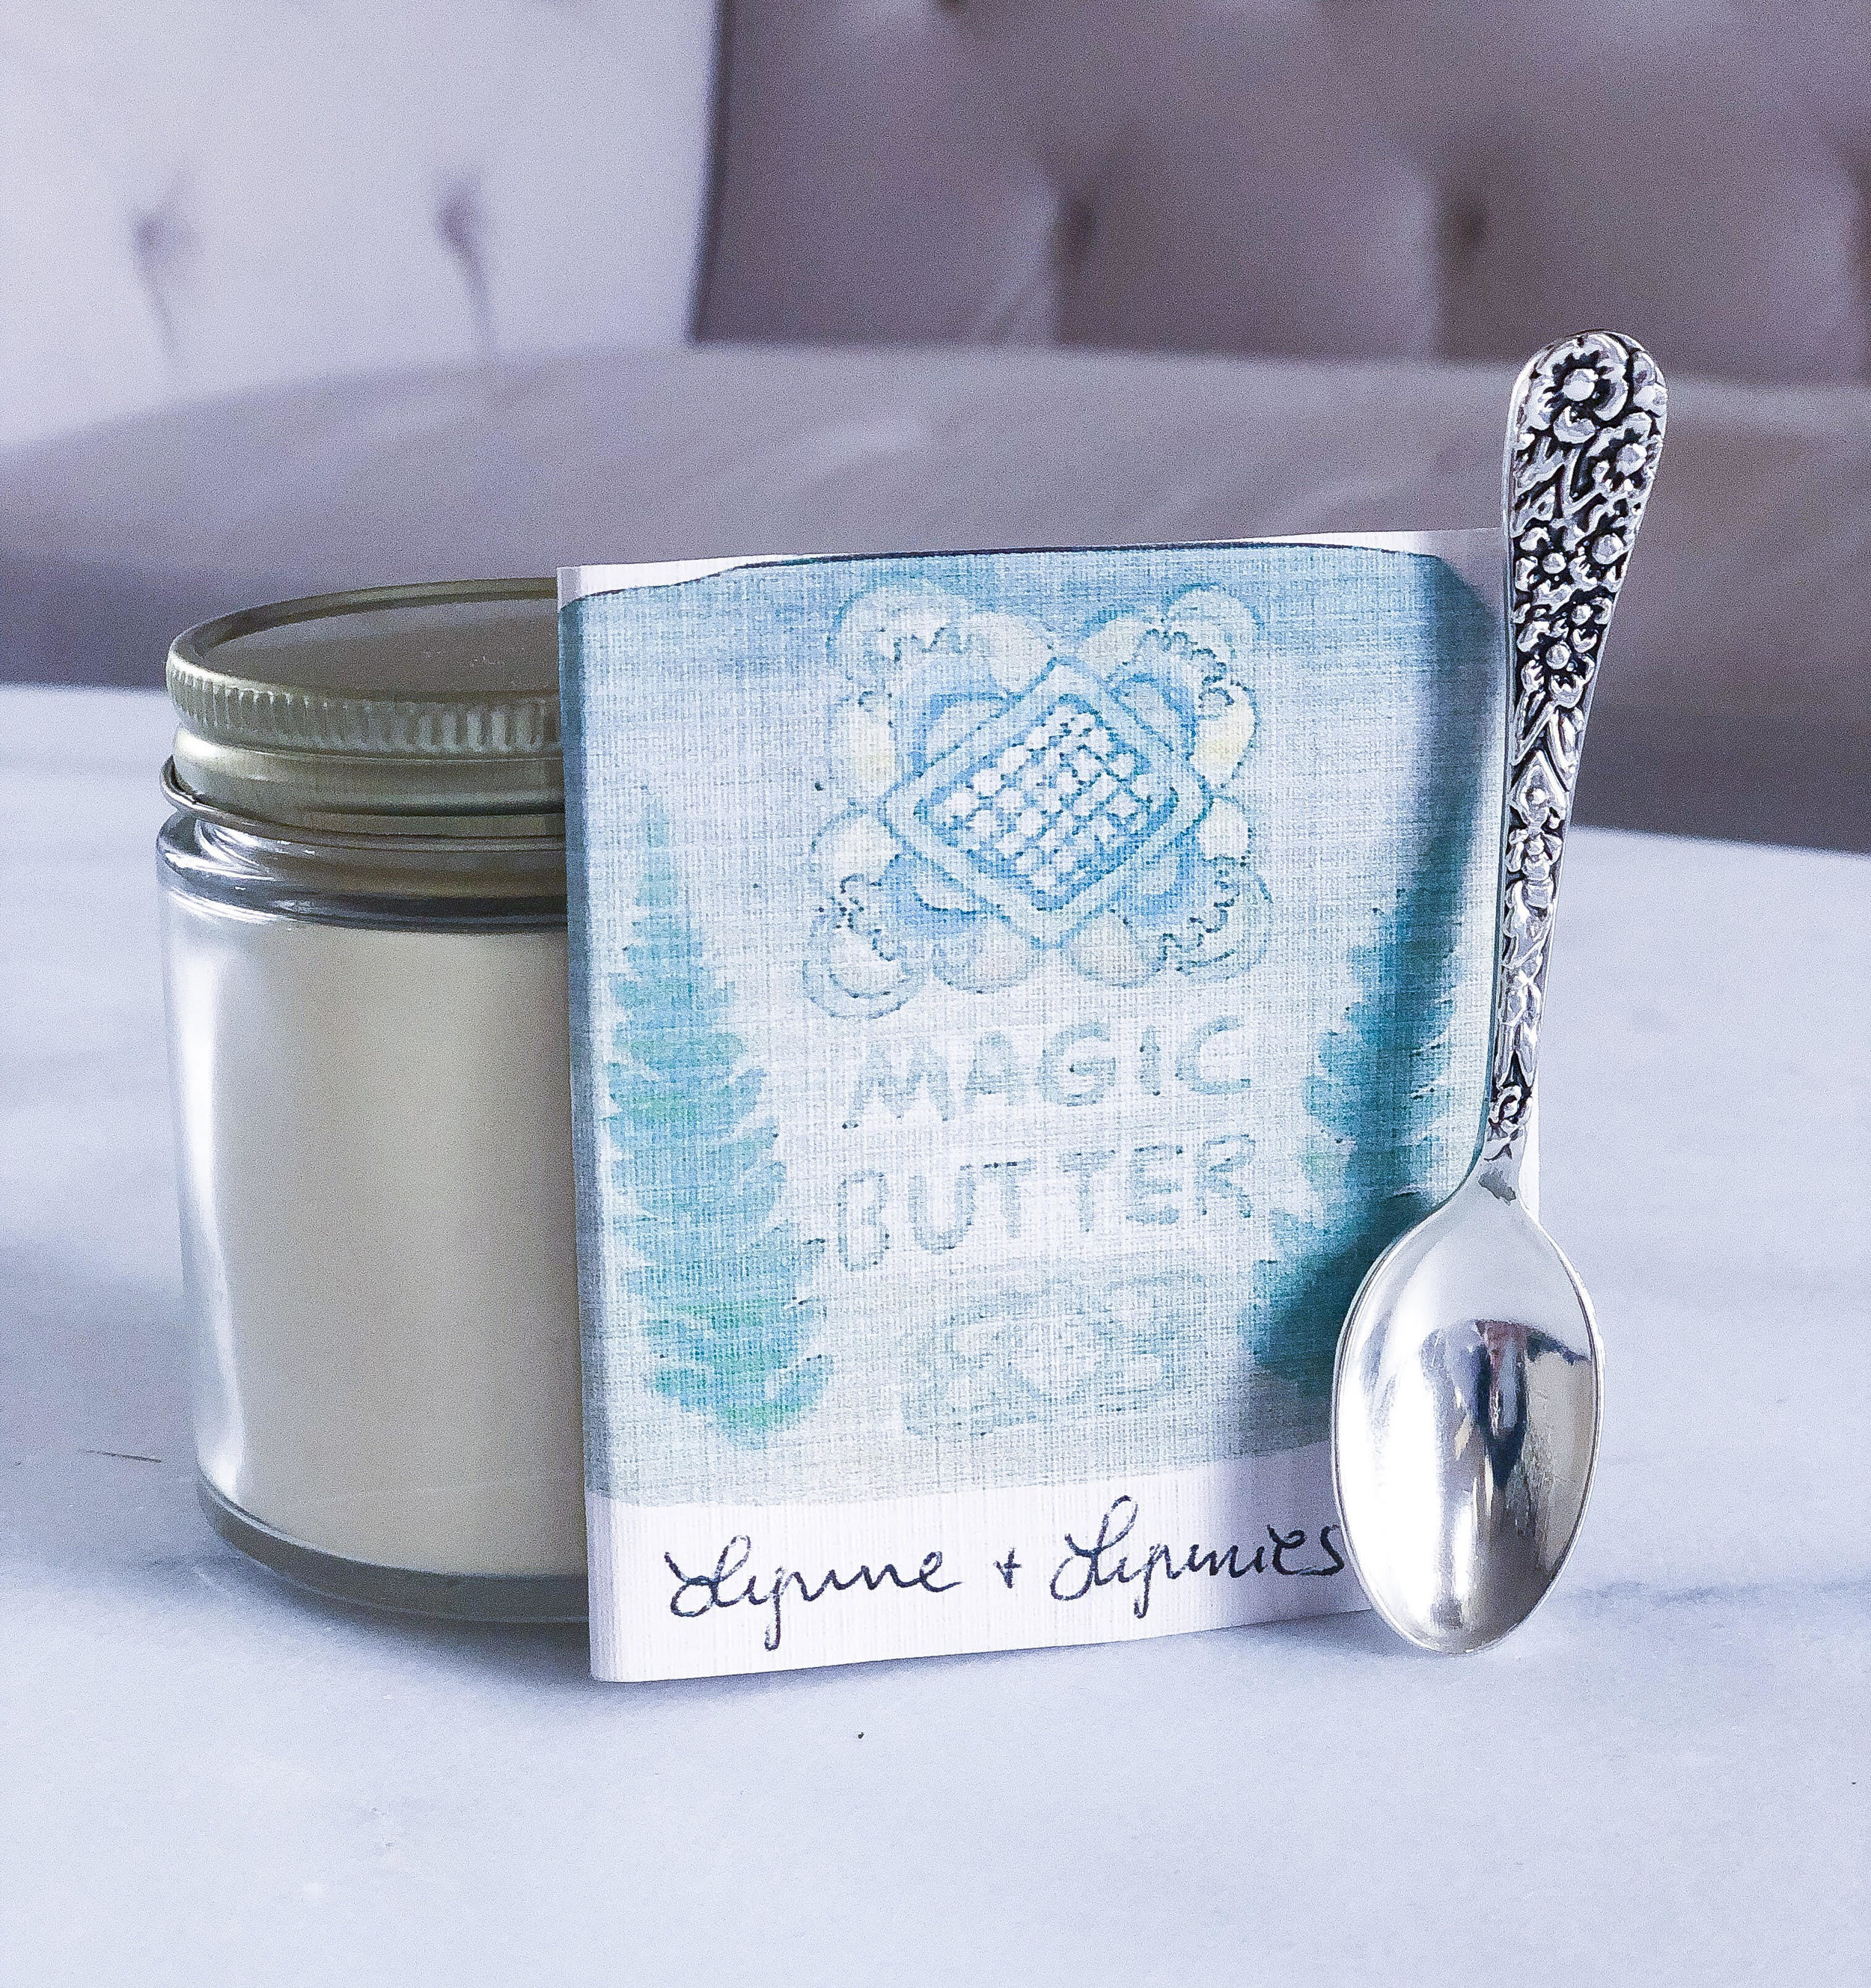 lynne+lynnies-magic-butter-05.jpg